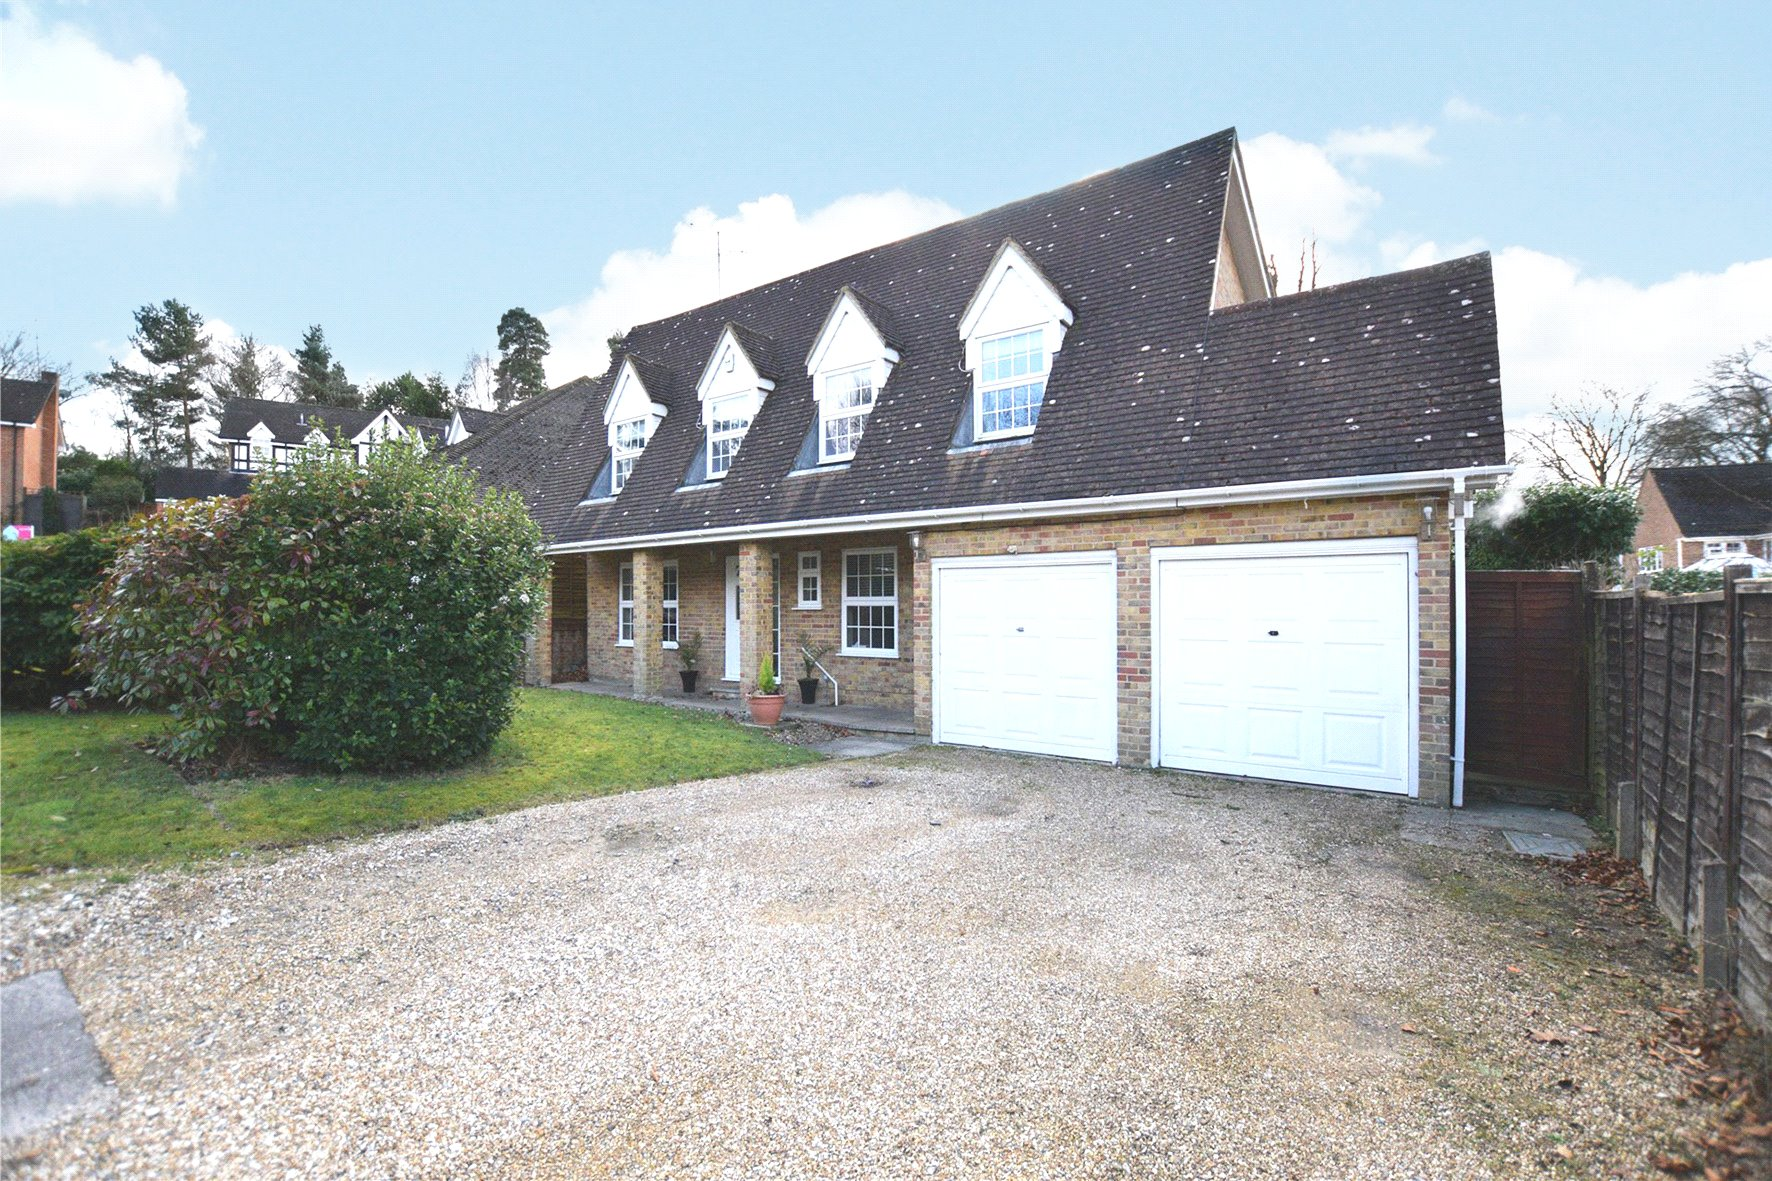 4 Bedrooms Detached House for sale in Gainsborough Close, Camberley, Surrey, GU15